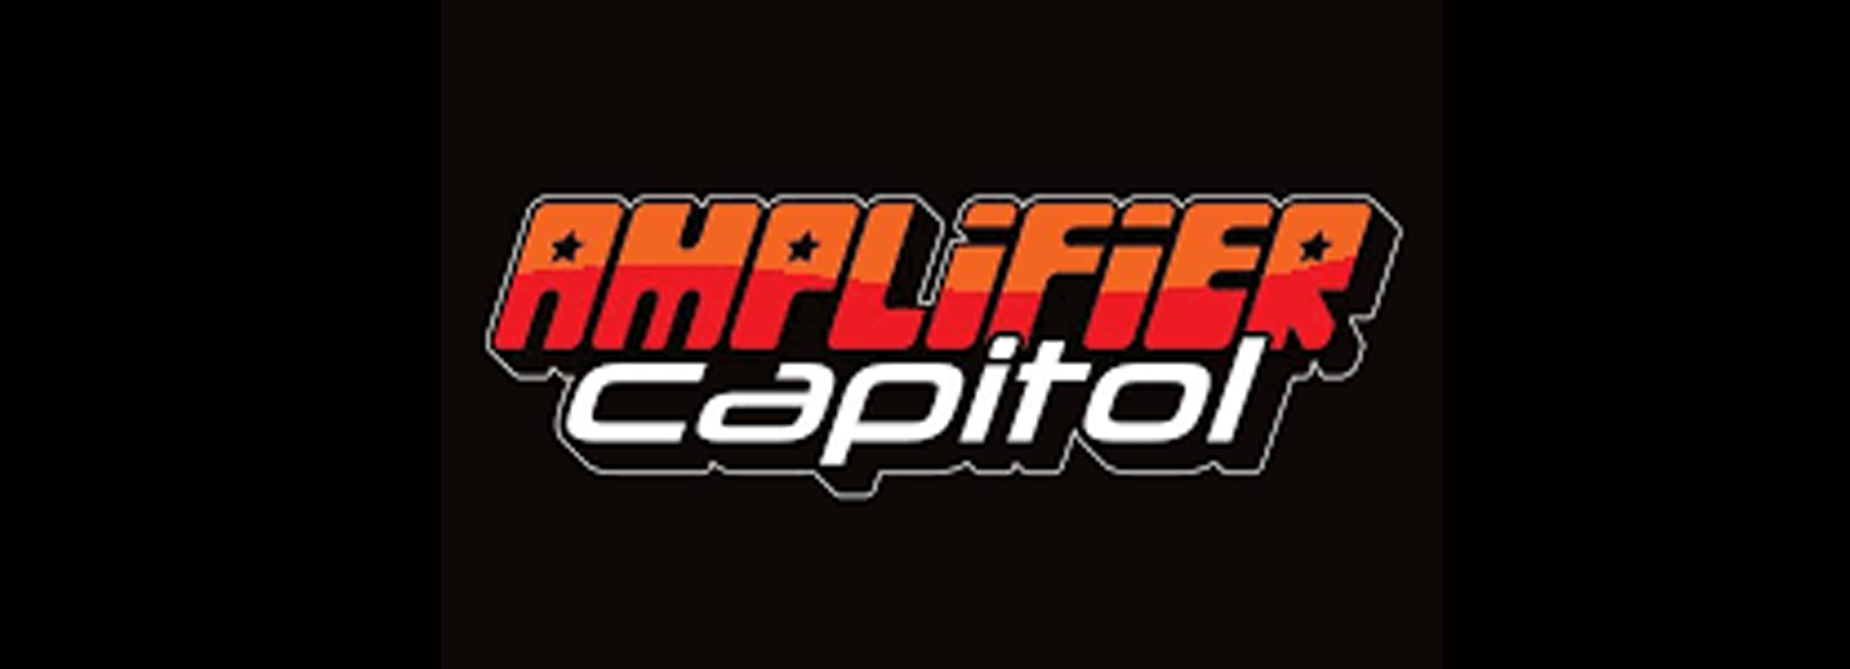 Amplifier Capitol Logo